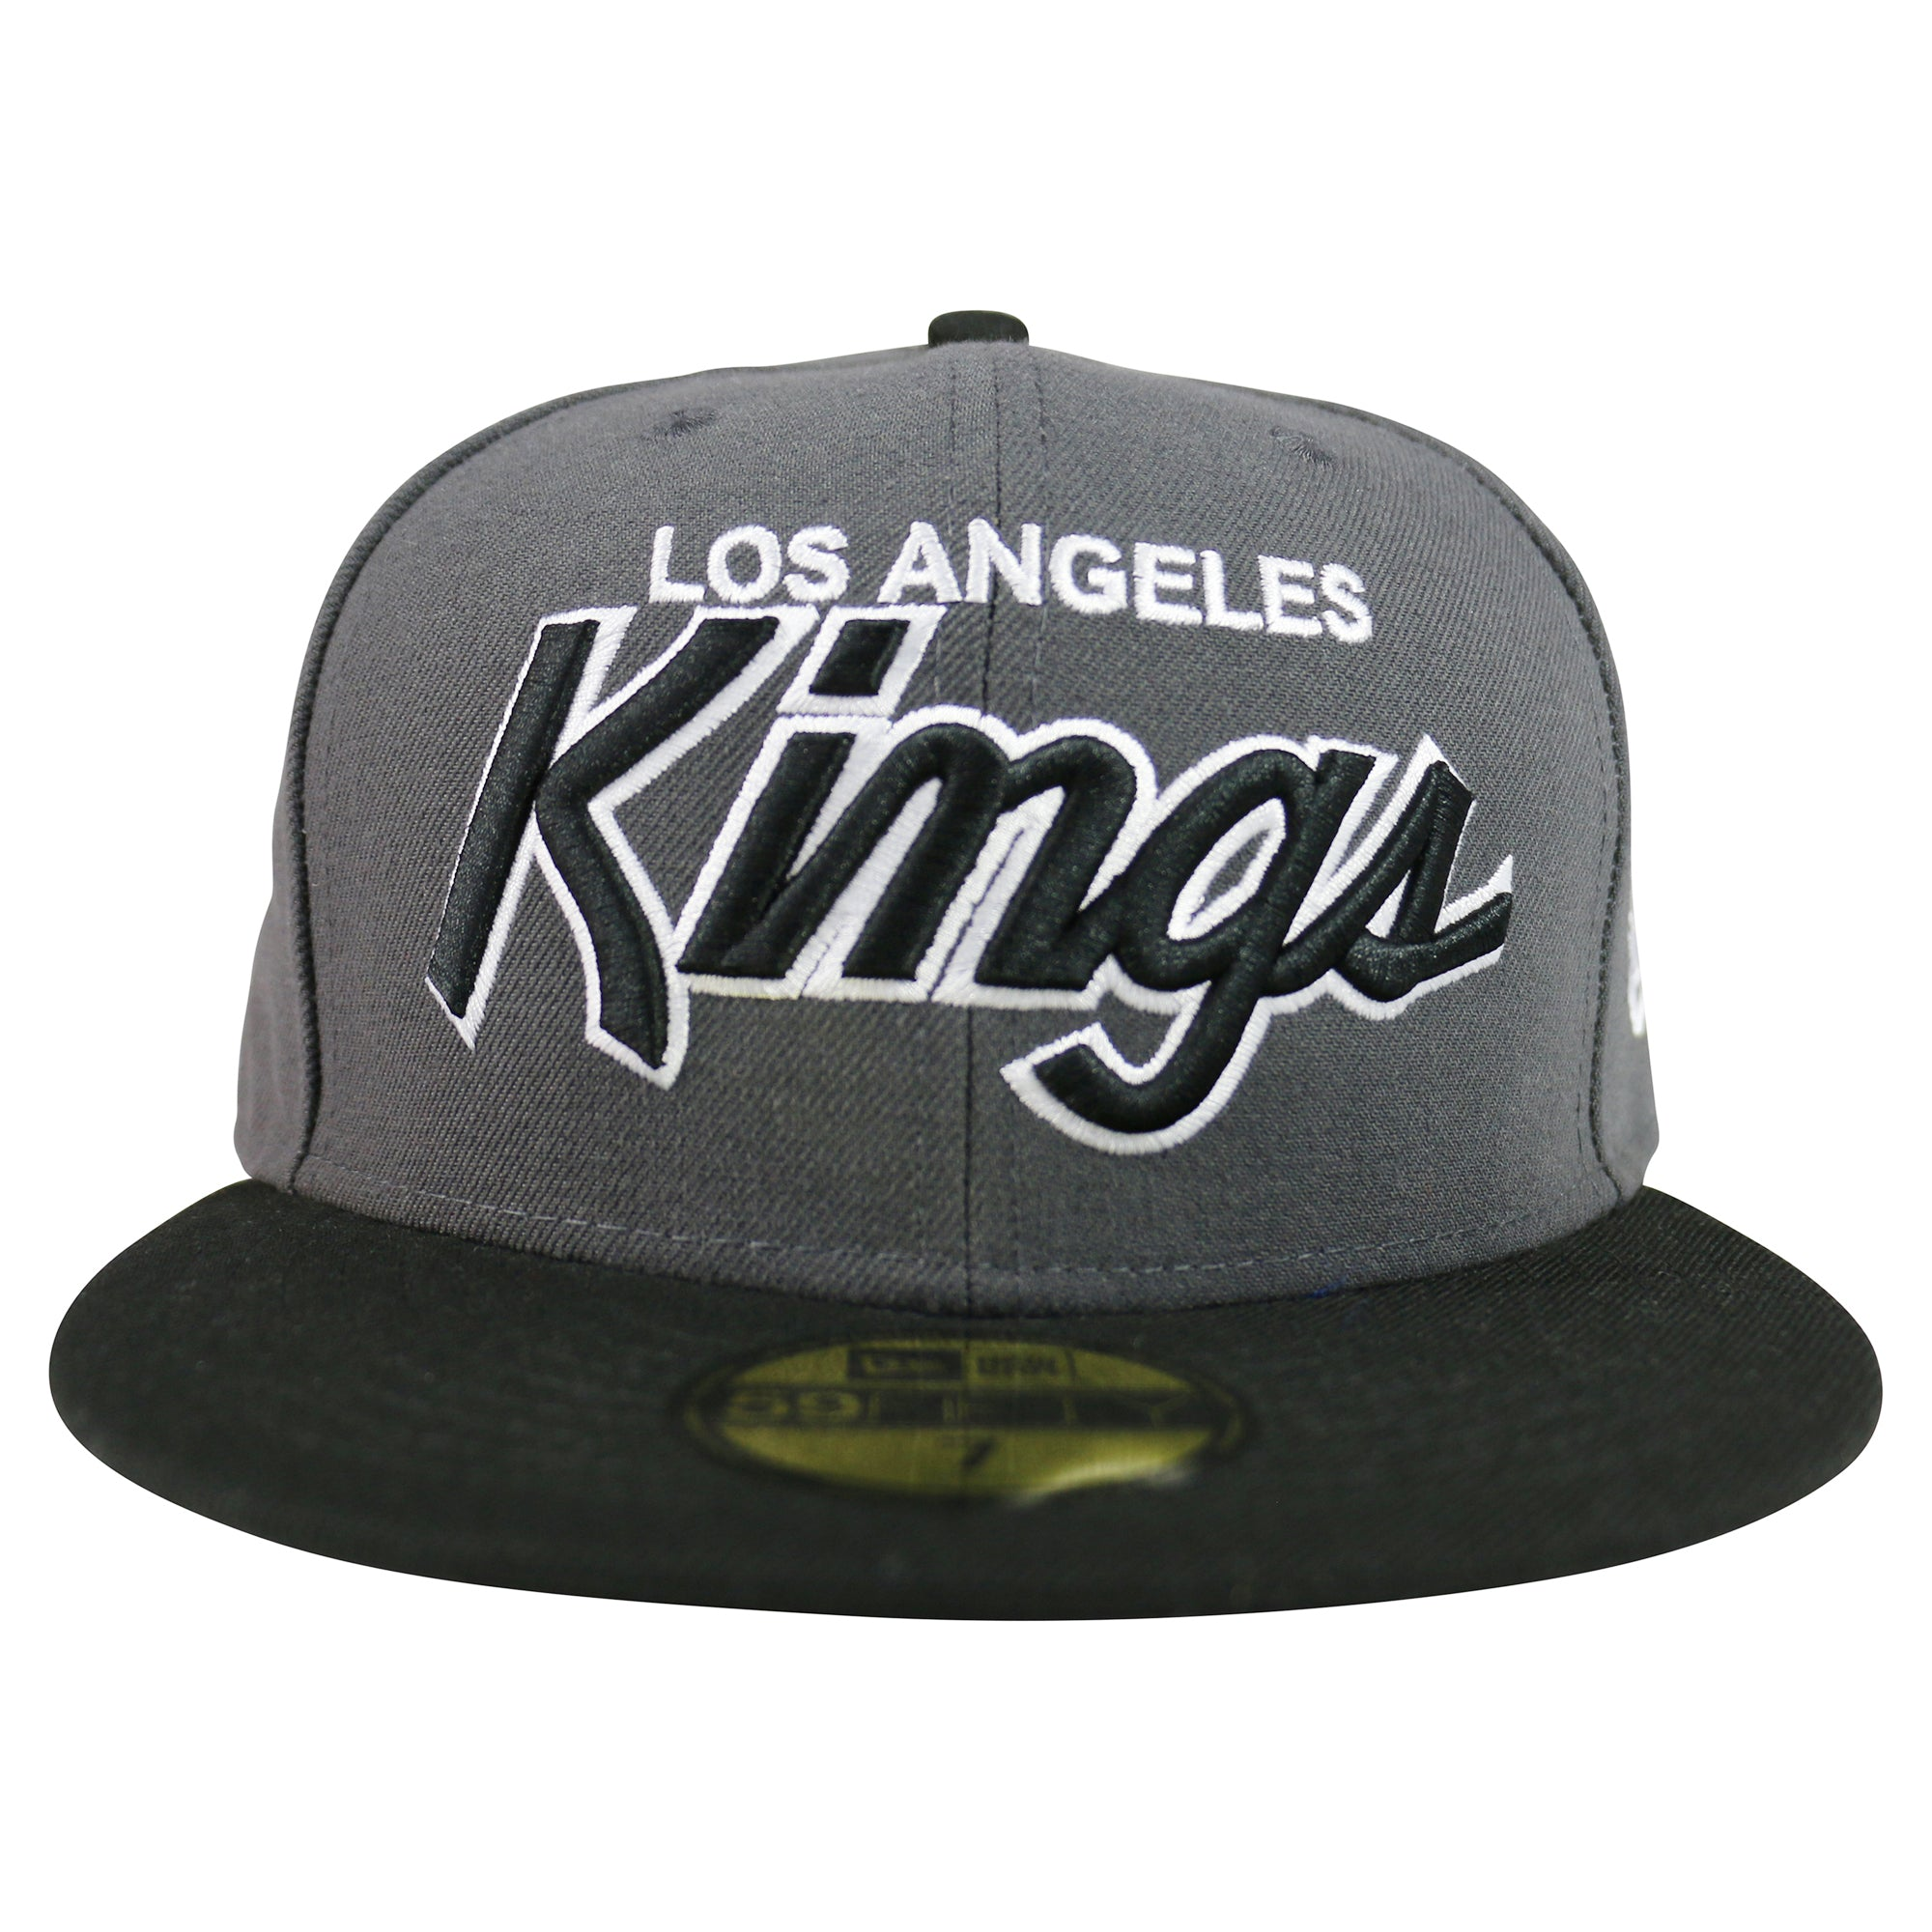 07ee291f Los Angeles Rams 2T 59FIFTY Fitted Hat. New Era $ 31.99 · LA Kings Script  59FIFTY Fitted Hat